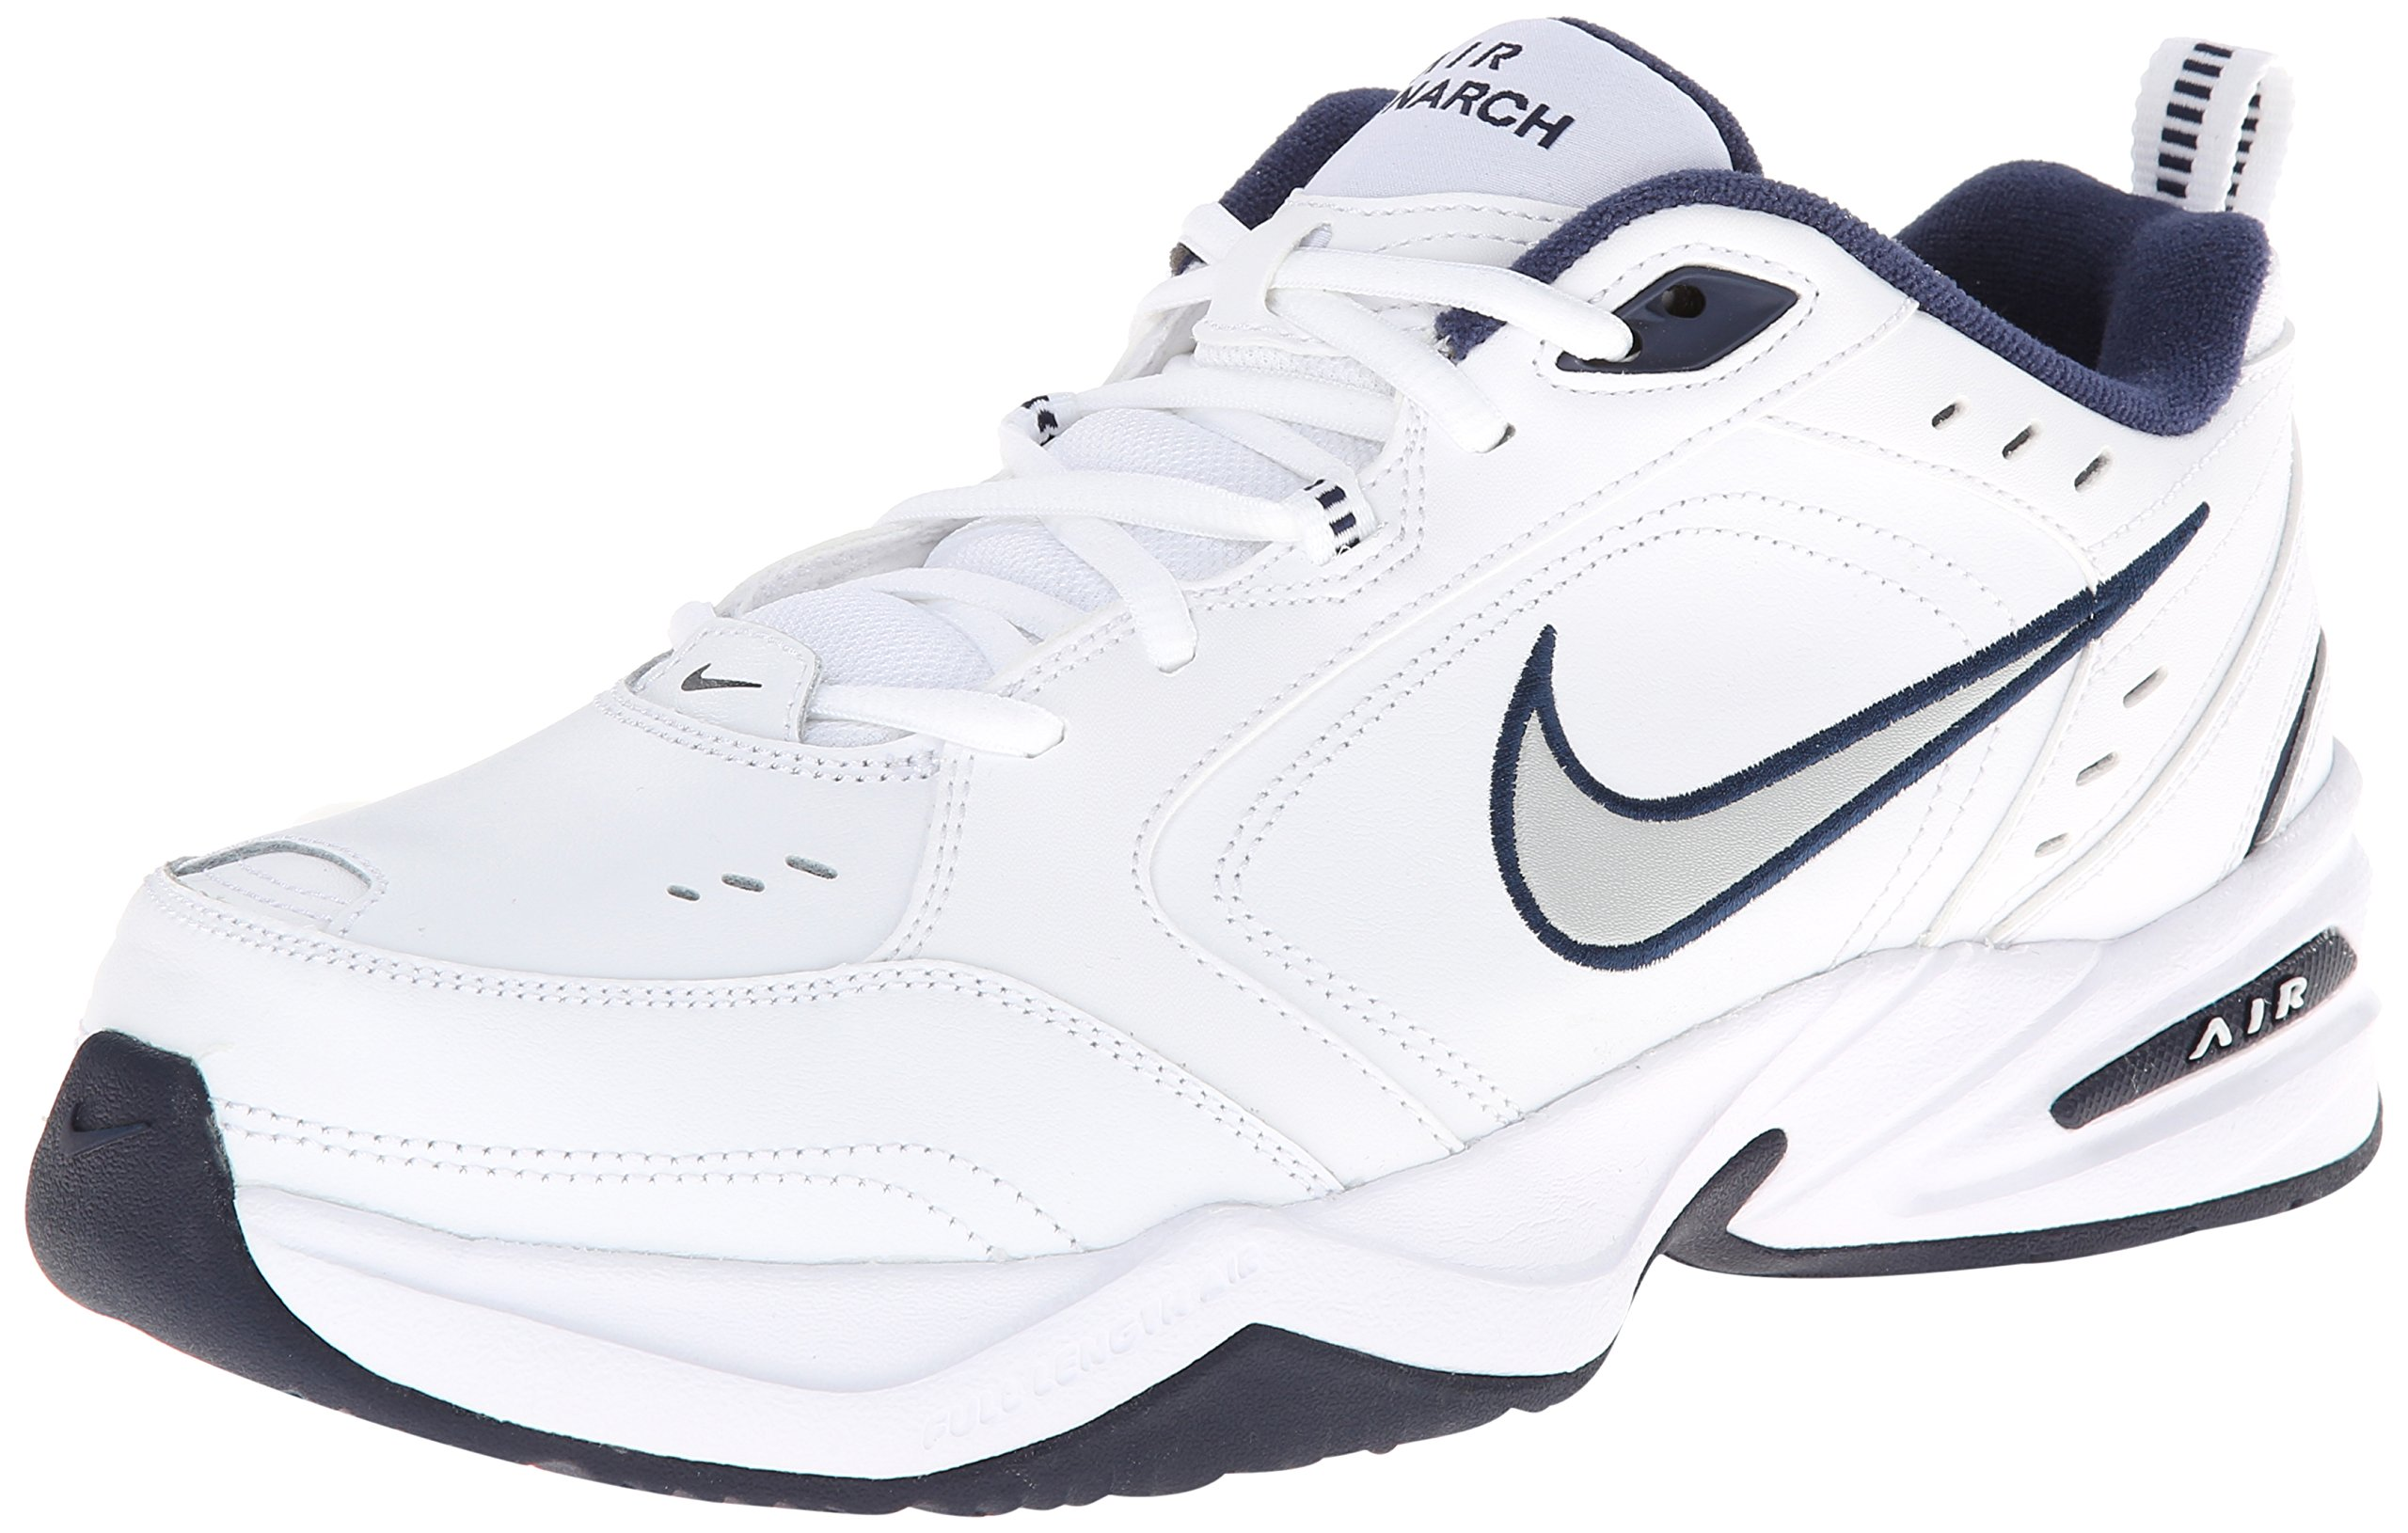 NIKE Men's Air Monarch IV Athletic Shoe, white/metallic silver, 10.5 Regular US by NIKE